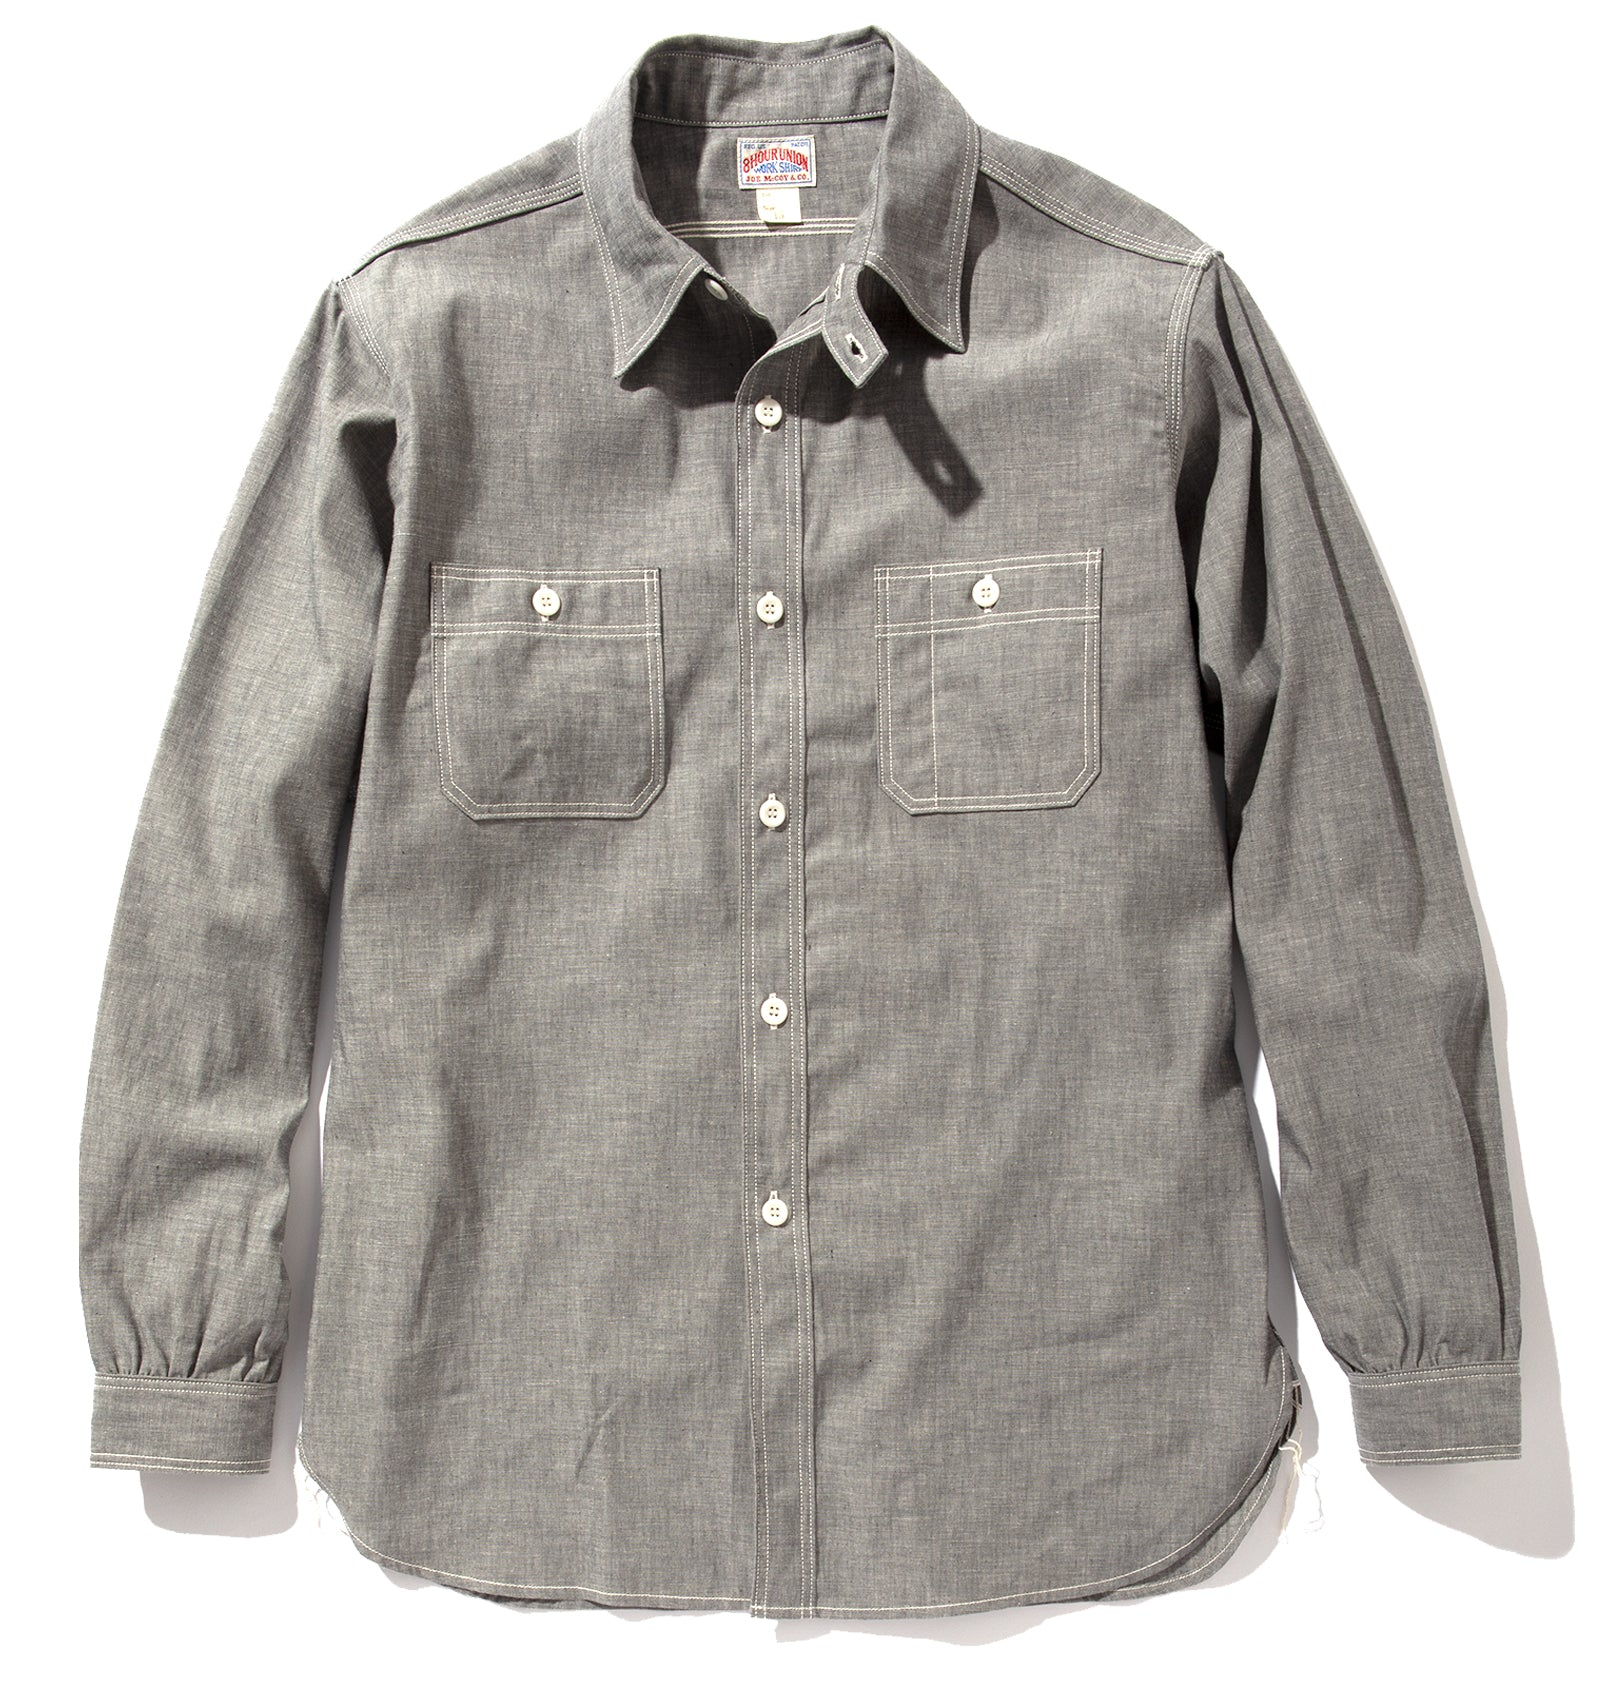 8HU GREY CHAMBRAY SERVICEMAN SHIRT